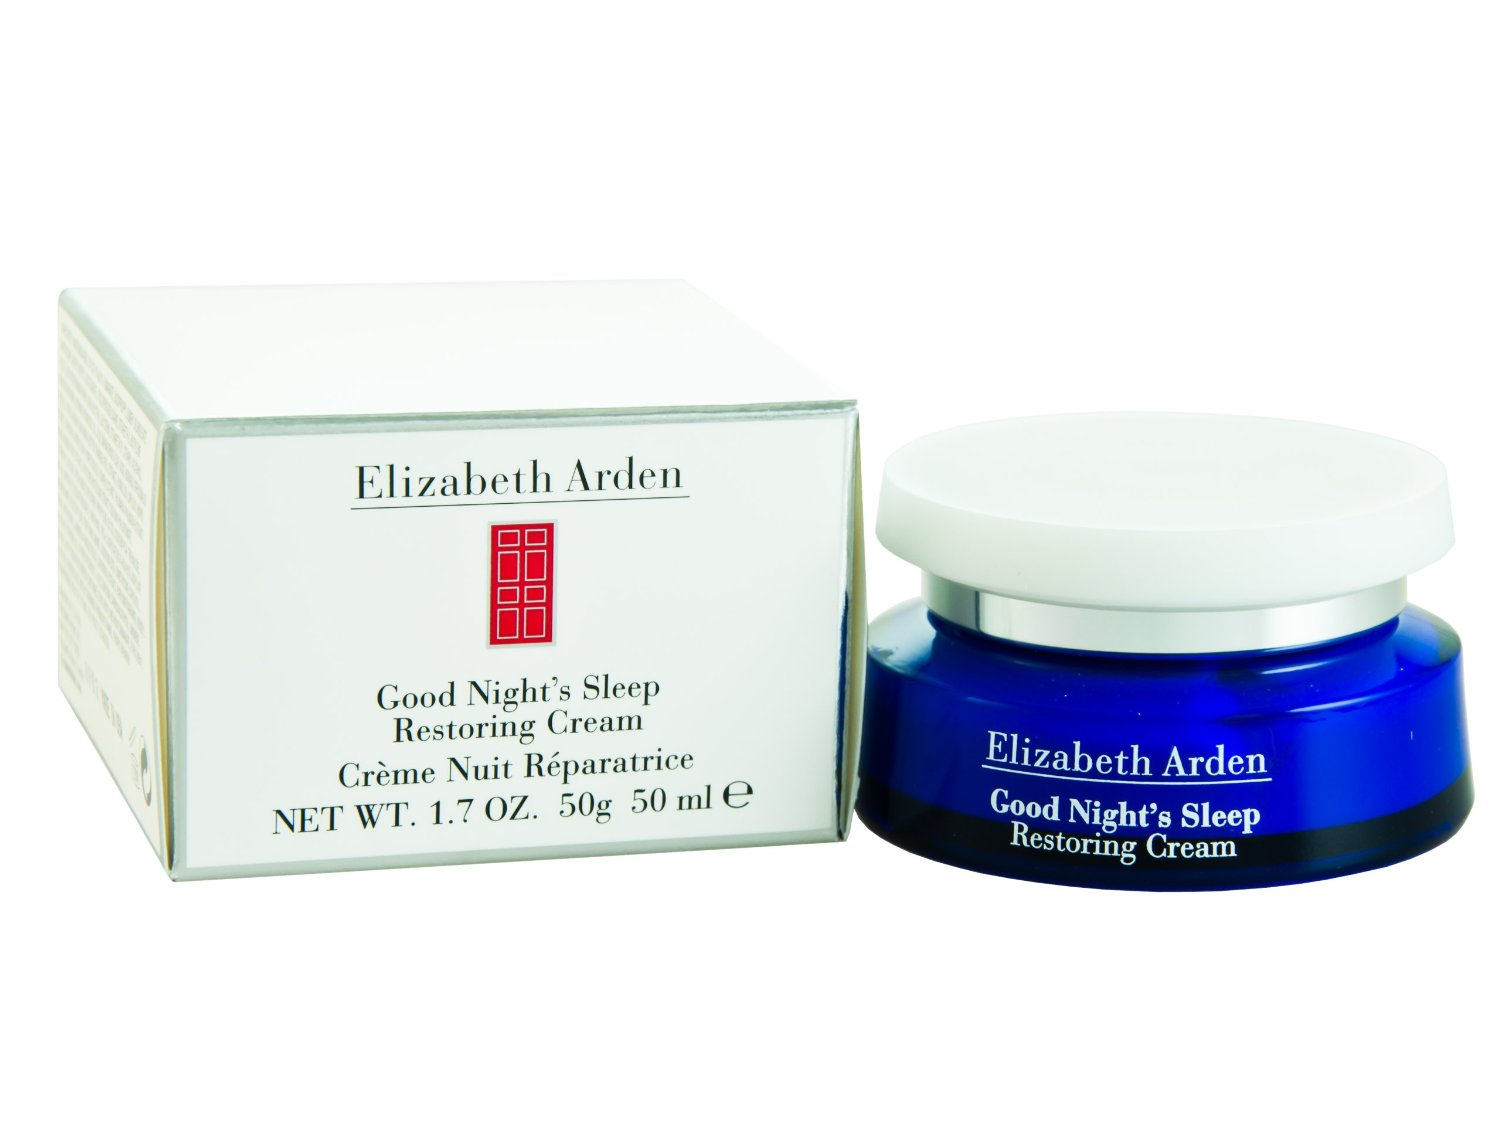 Cream  >> Elizabeth Arden Good Night's Sleep Restoring Cream, 1.7 oz